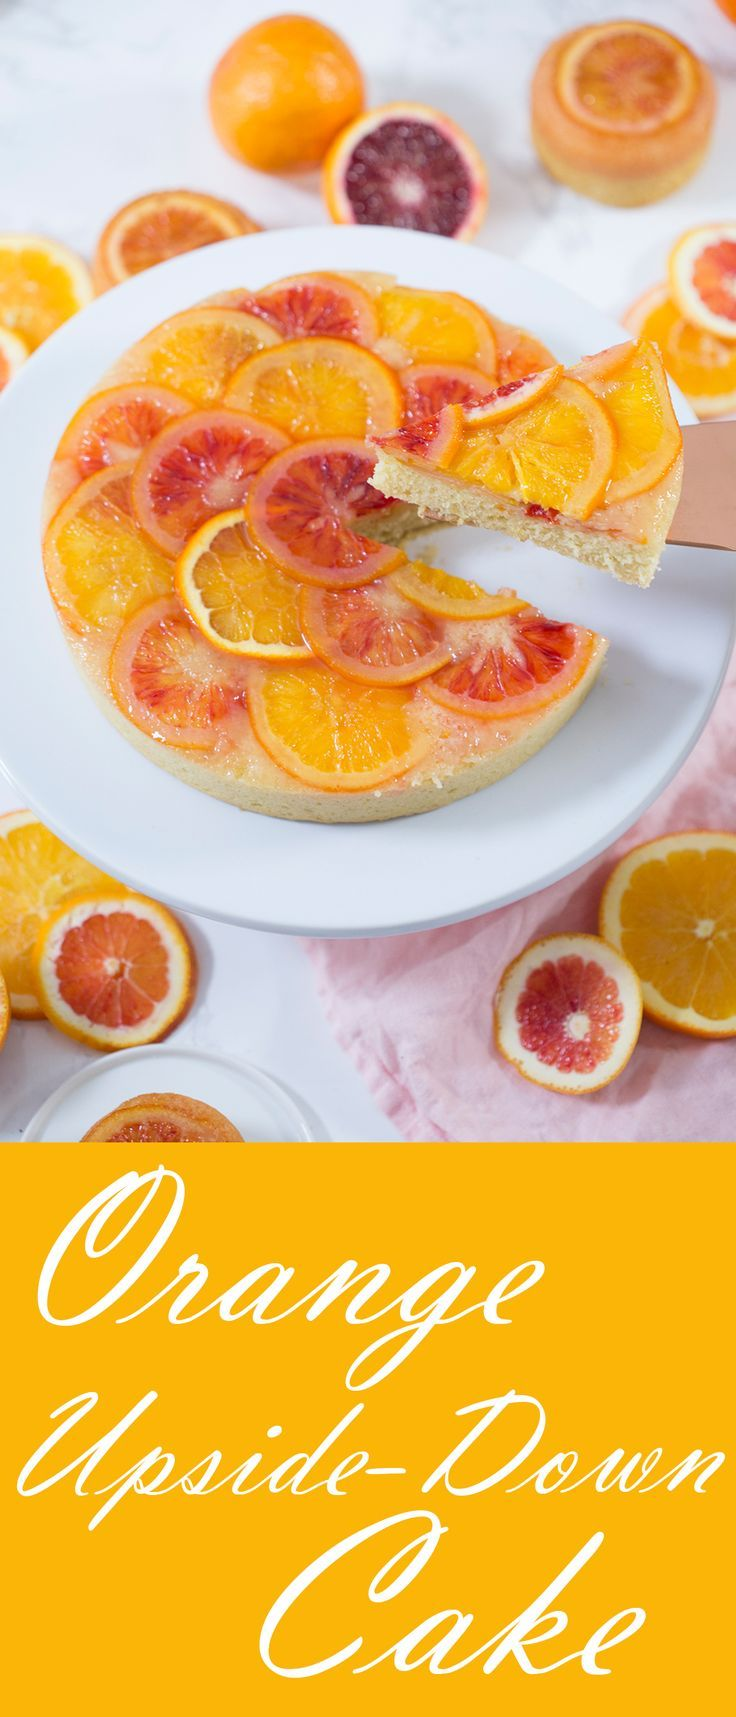 The ultimate orange upside-down cake made with fresh navel oranges and blood oranges. | #oranges #bloodoranges #recipes #cakes #bestcakes #easycakes #valentinesday #desserts #citrus #recipes